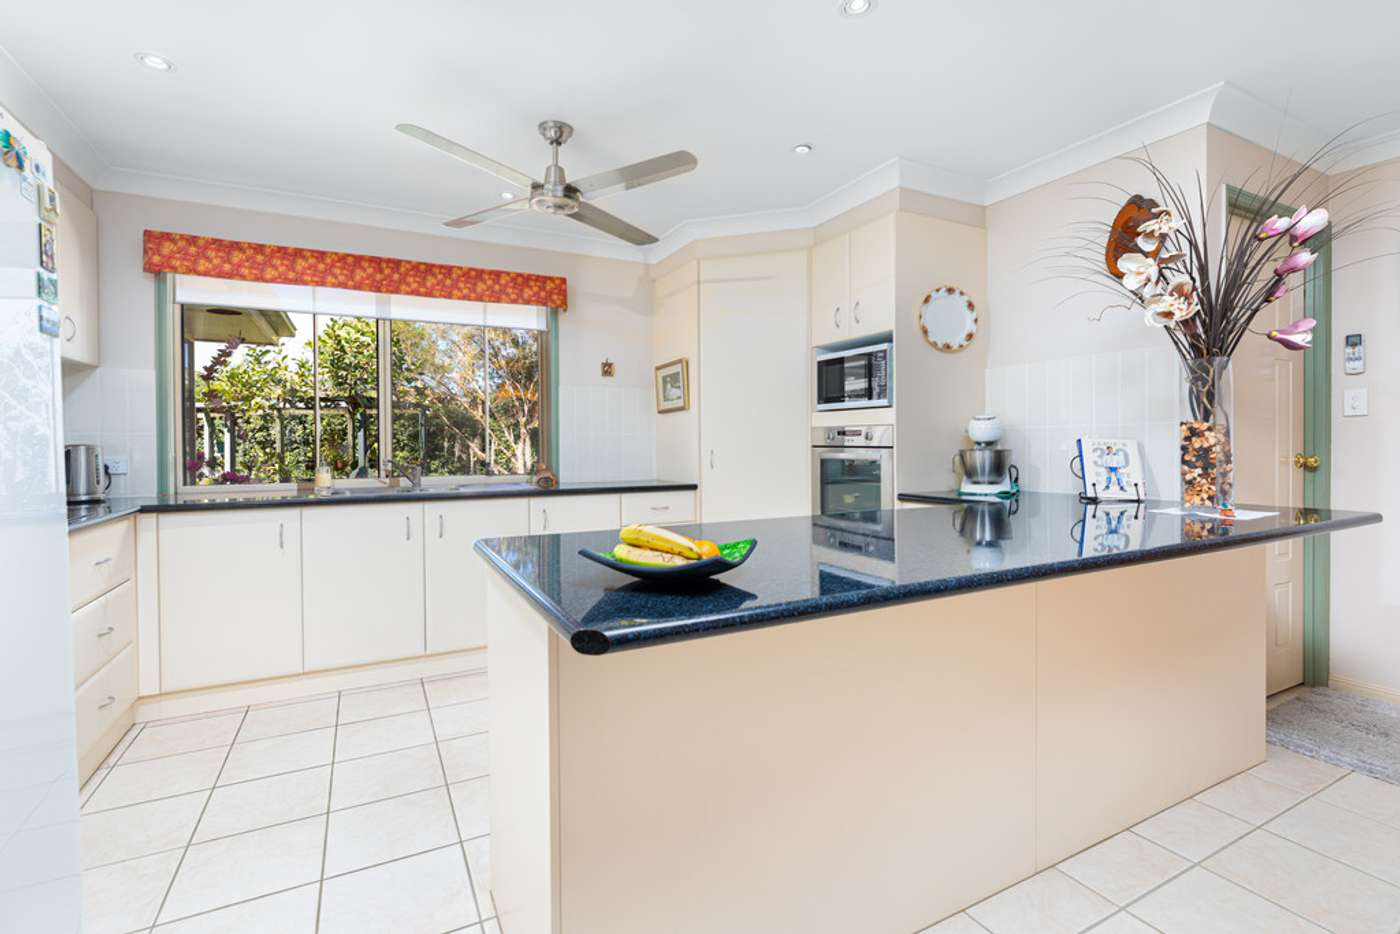 Main view of Homely house listing, 6 Persea Place, Glass House Mountains QLD 4518